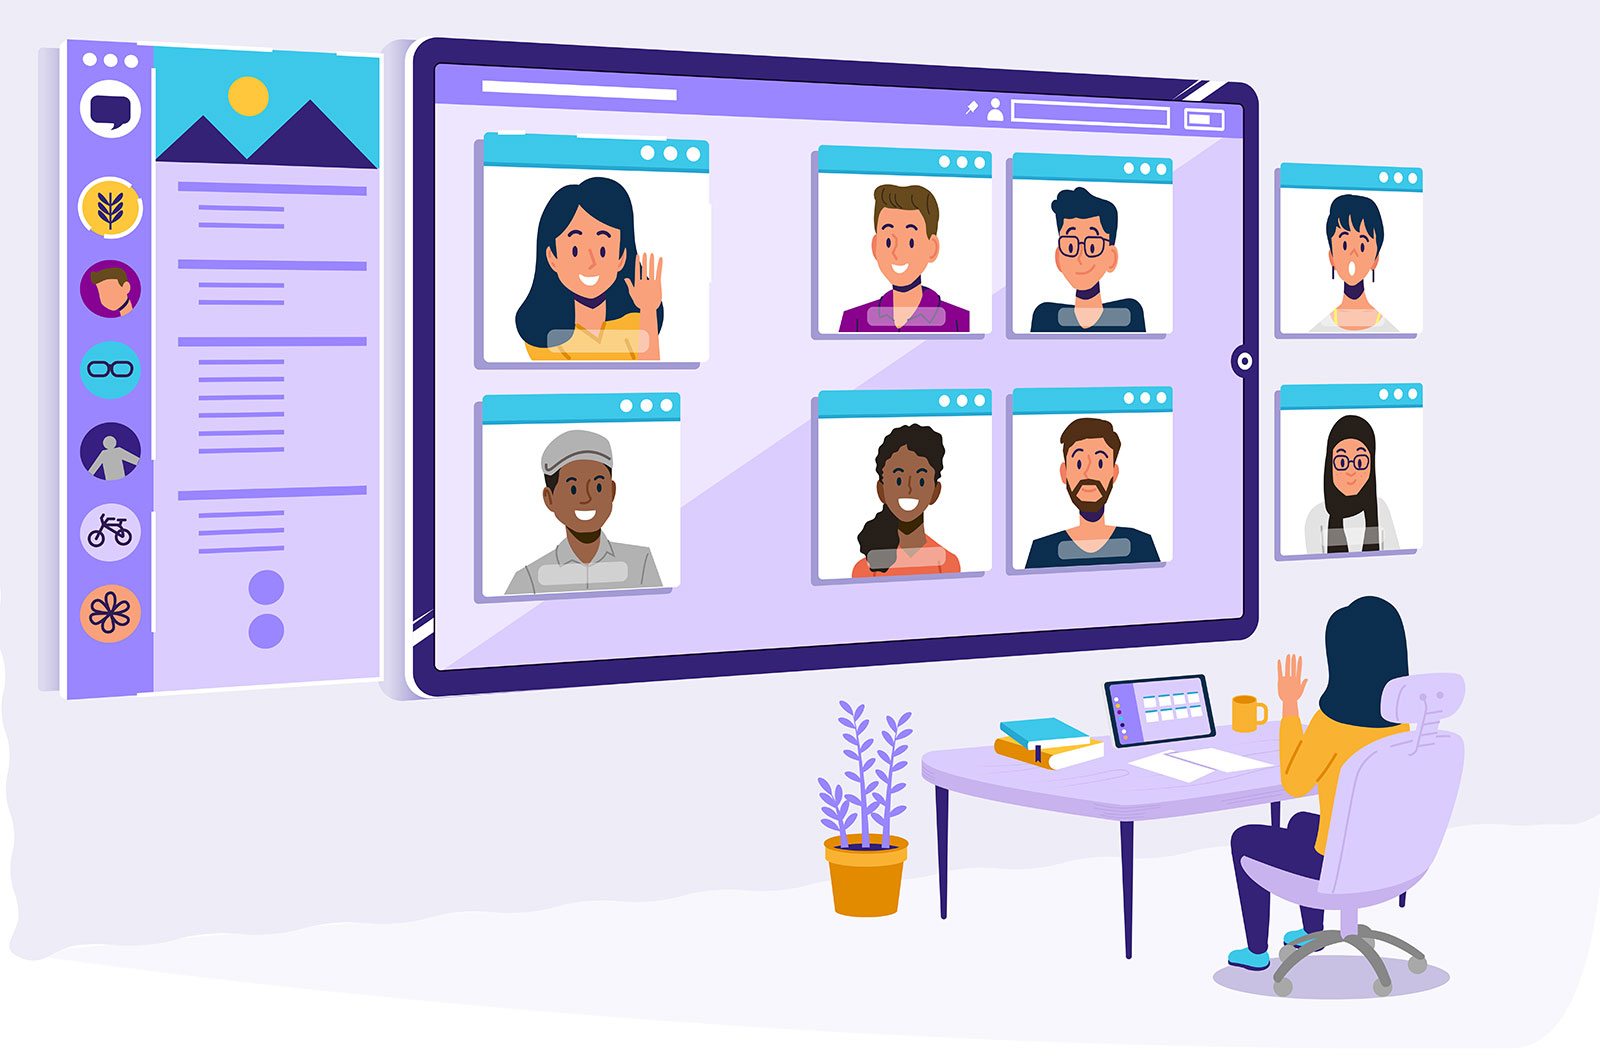 Illustration of a group of people working together on a video conference.